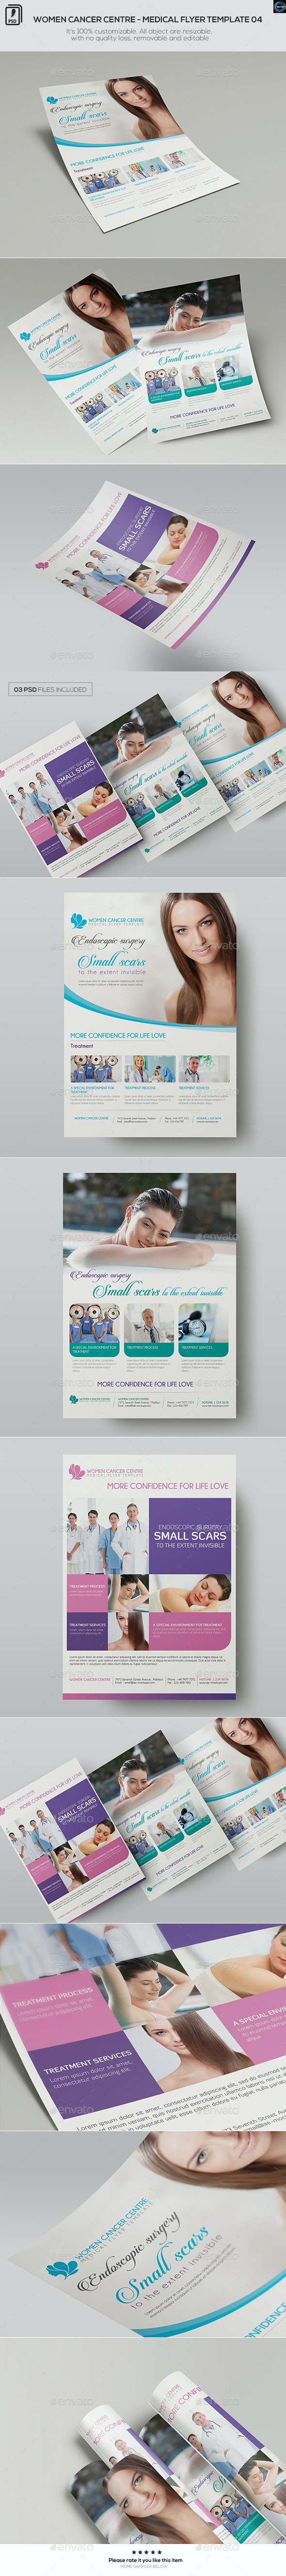 Women Cancer Centre - Medical Flyer Template 04 - Corporate Flyers